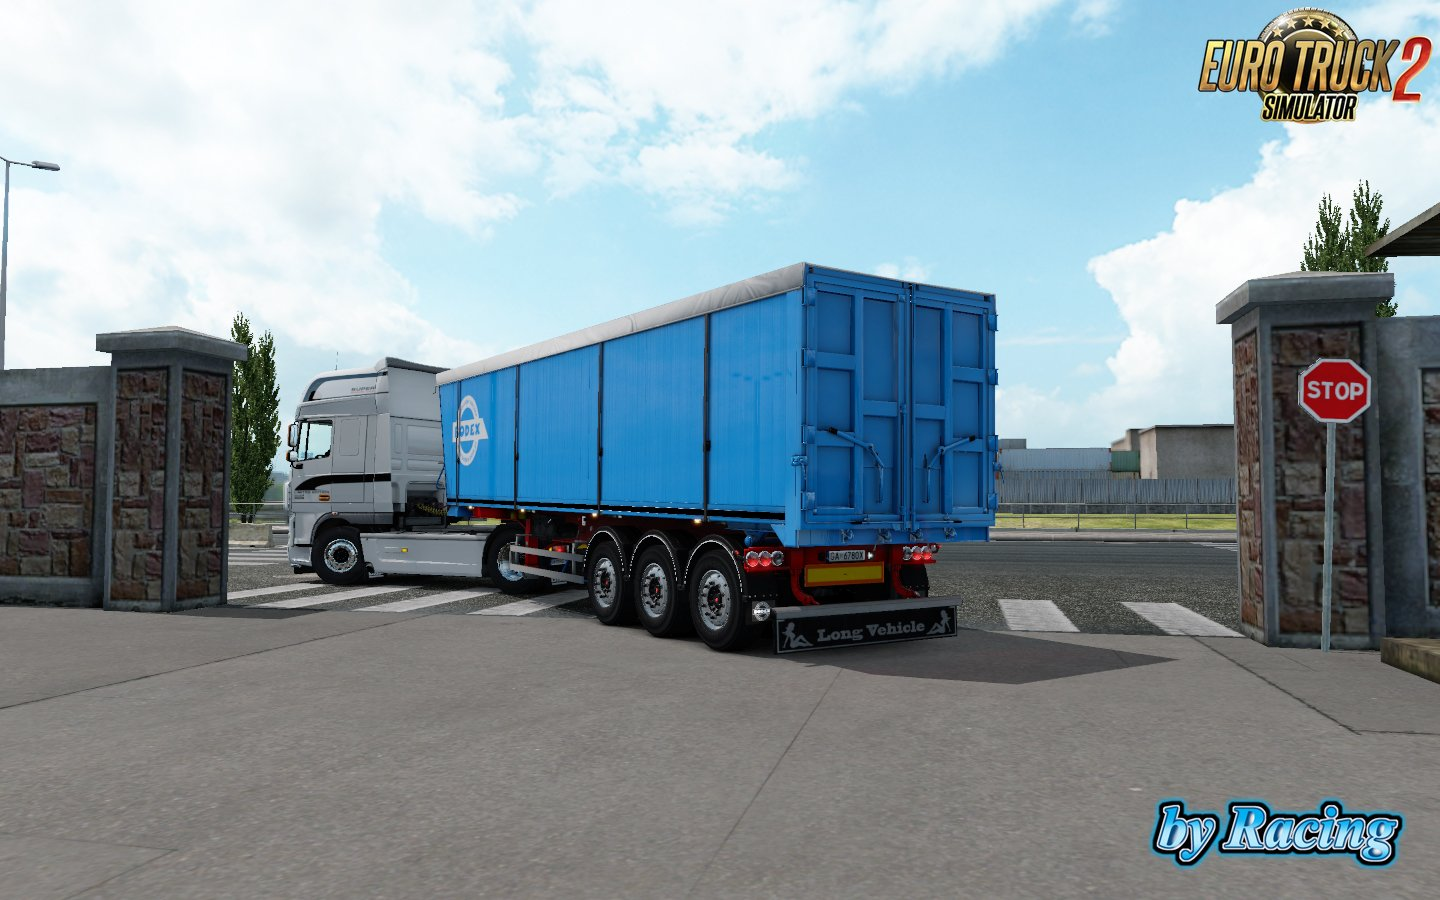 Trailer Bodex KIS 3 v1.0 by Racing (1.33.x)